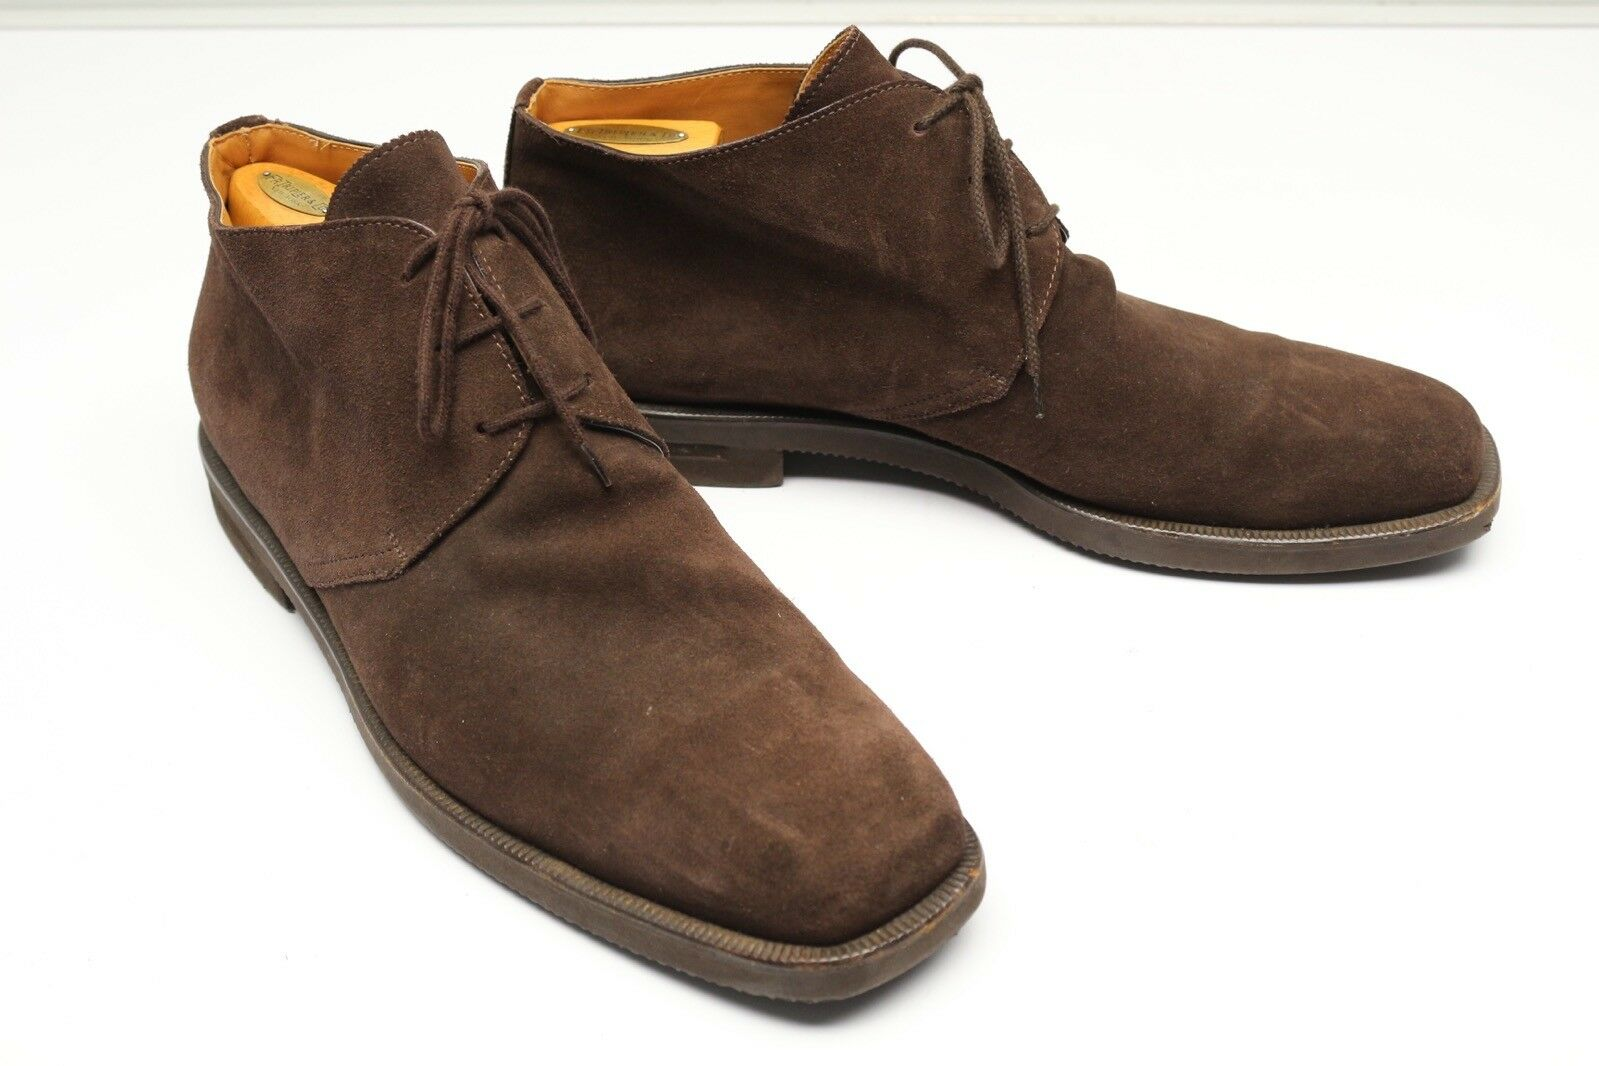 Sutor Mantellassi Suede Chukka Ankle Boots 13 Brown Leather Rubber Sole shoes